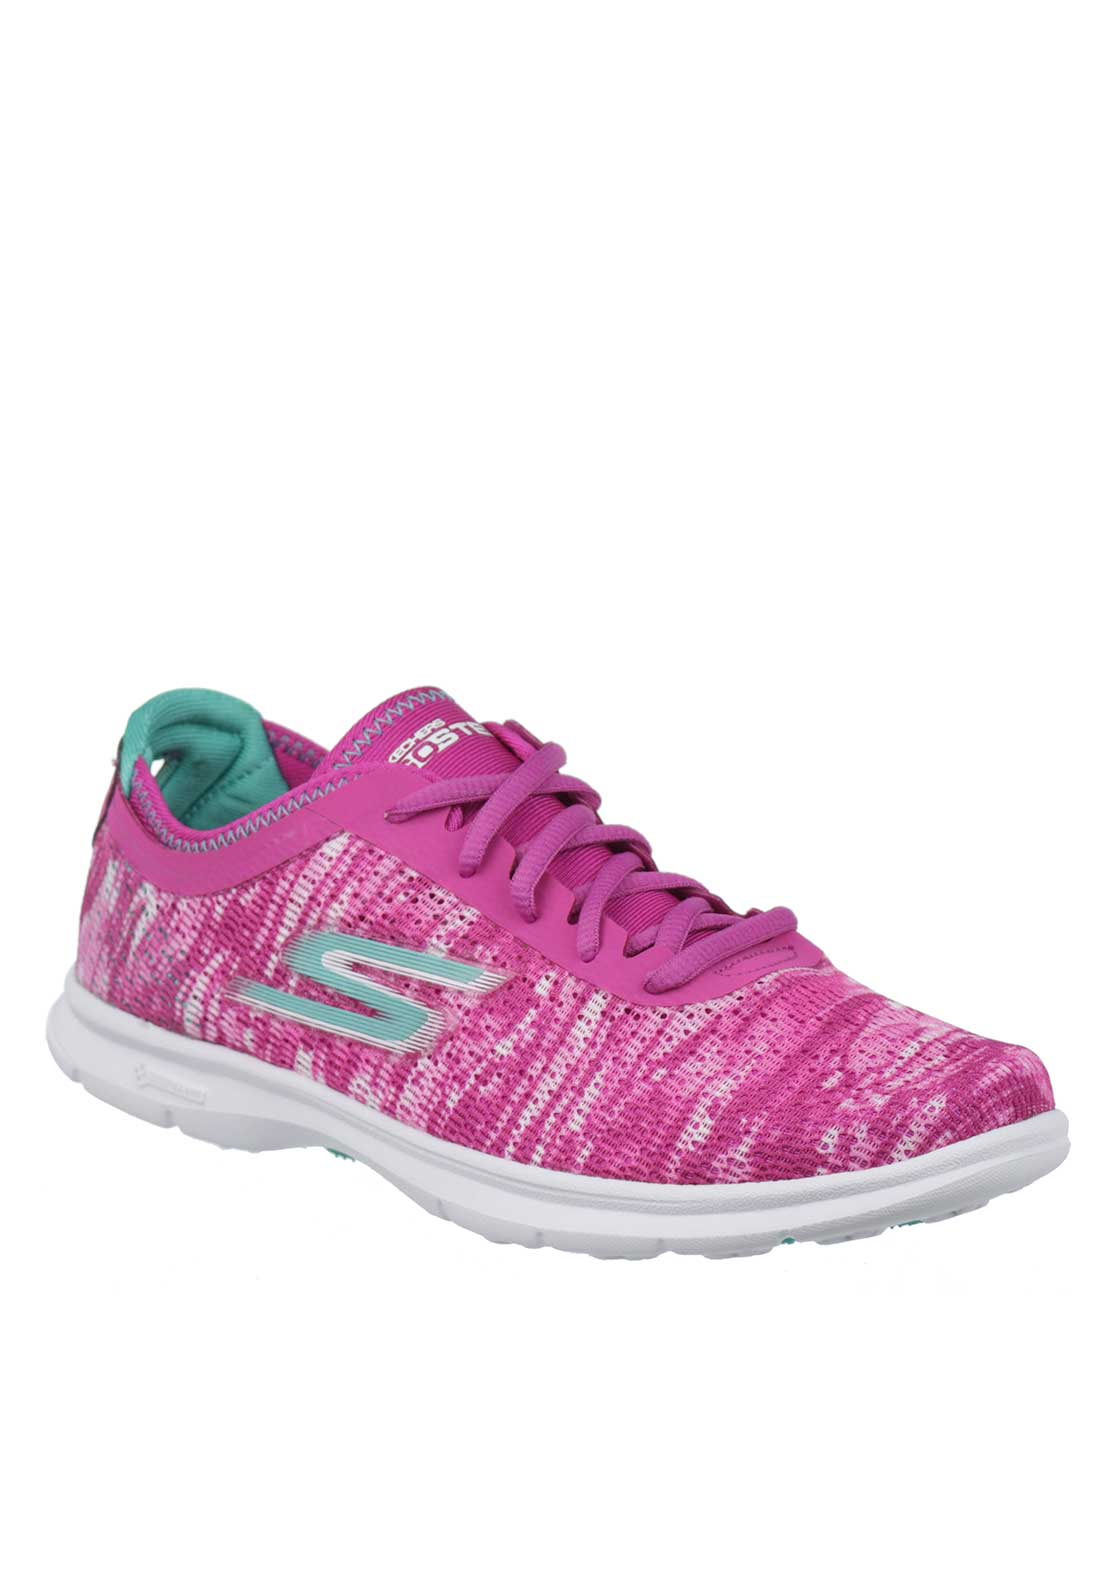 Skechers Womens Go Step Knit Trainers, Pink